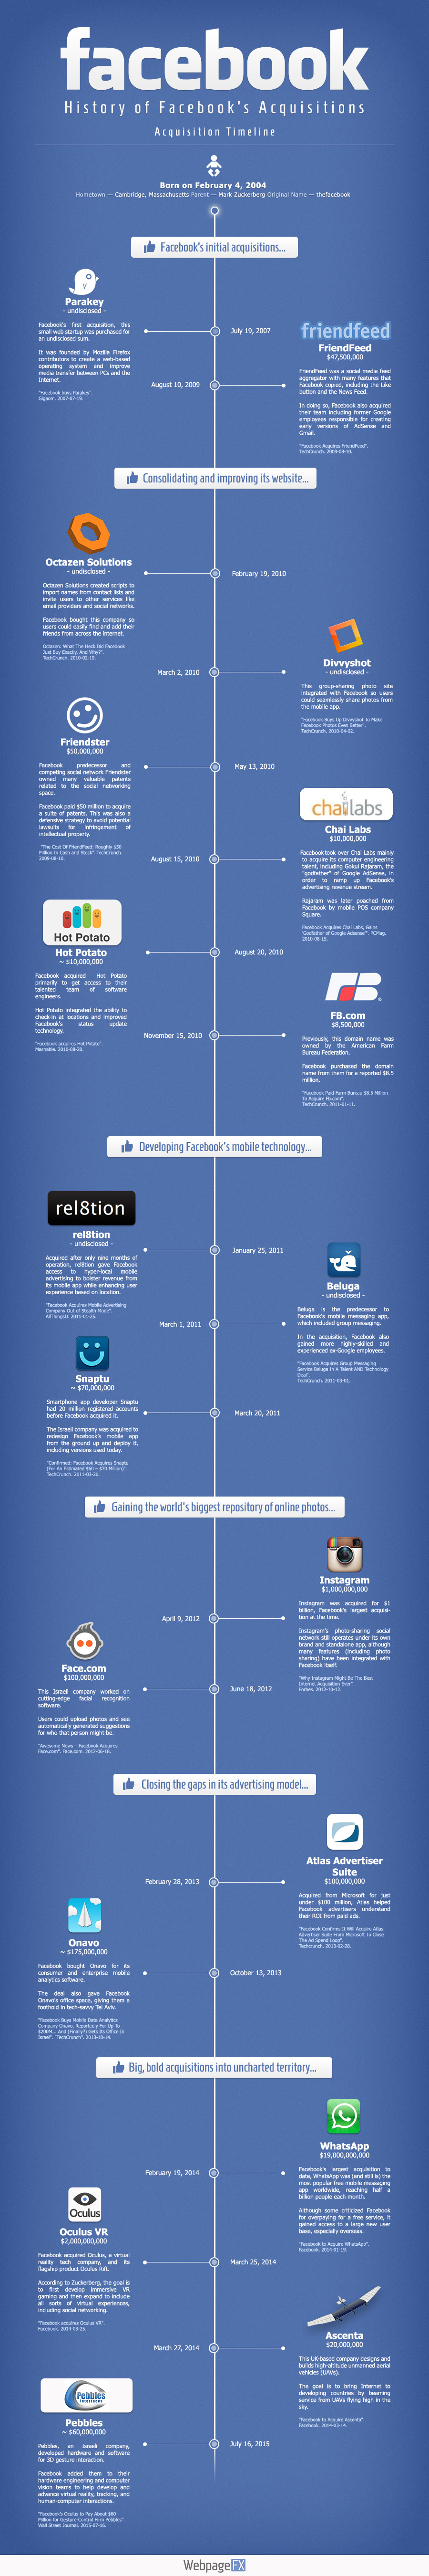 Facebook has been acquiring businesses over the last ...